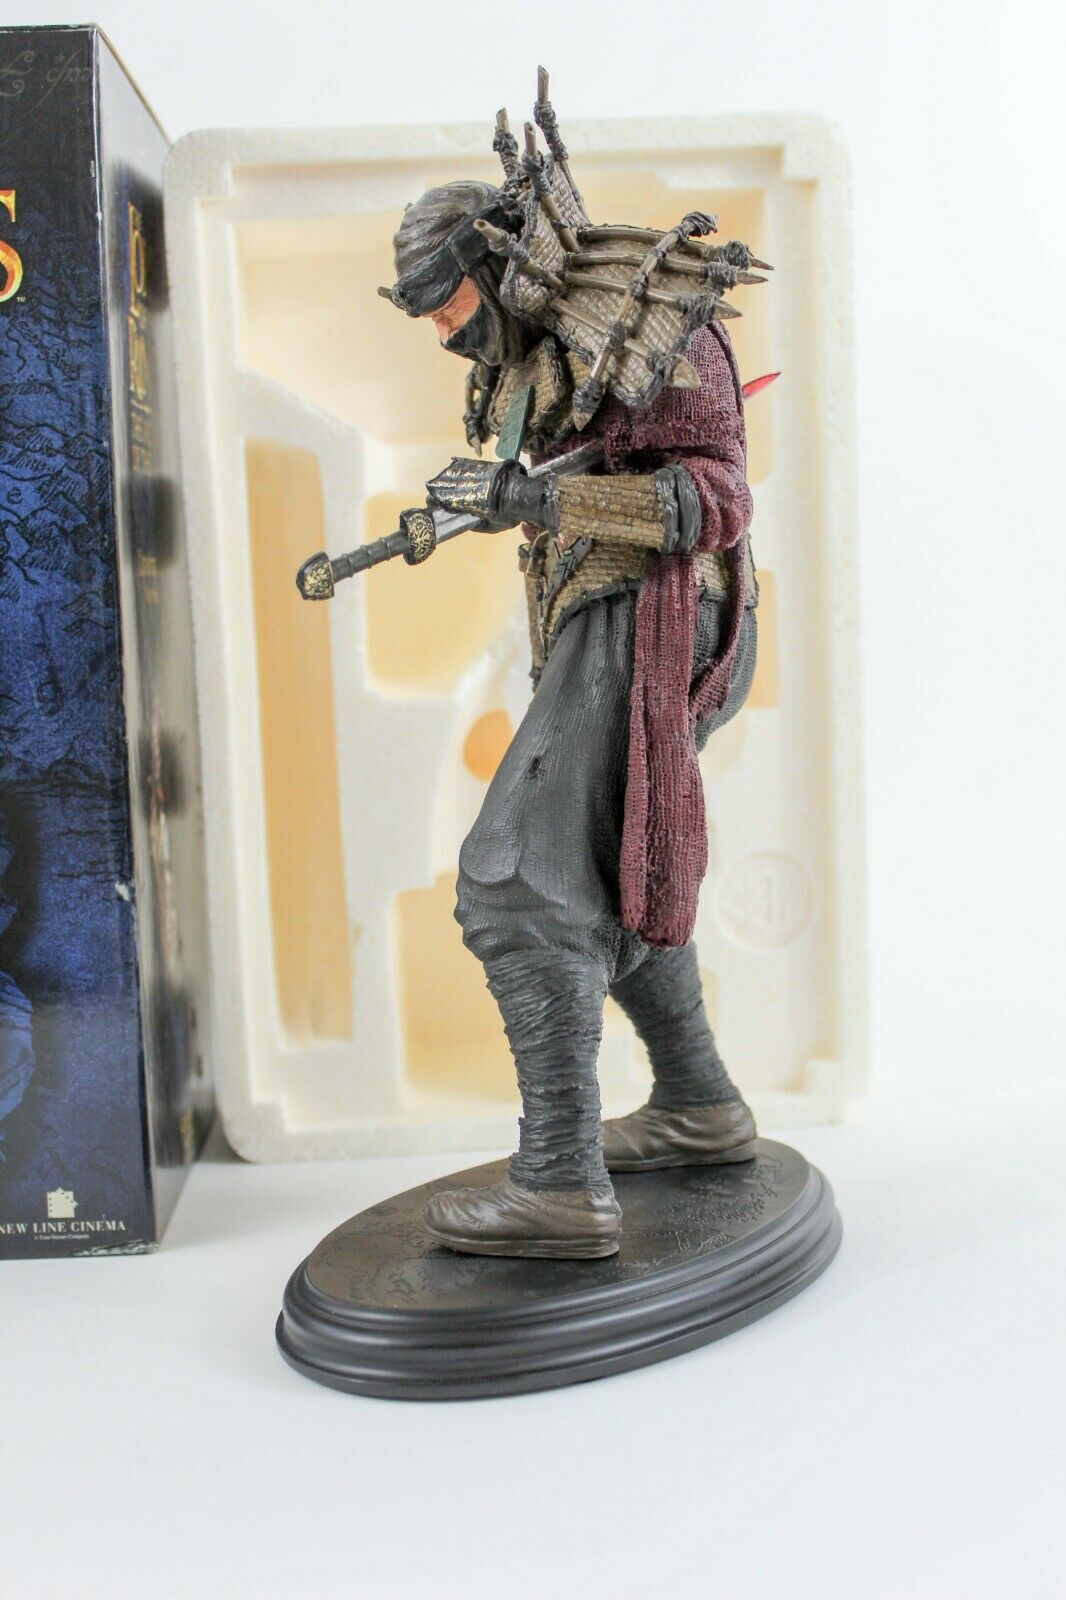 Haradrim Soldier Lord of the Rings Statue 2004 Sideshow Sideshow Sideshow Weta rossoK  433 Polystone 938cdd